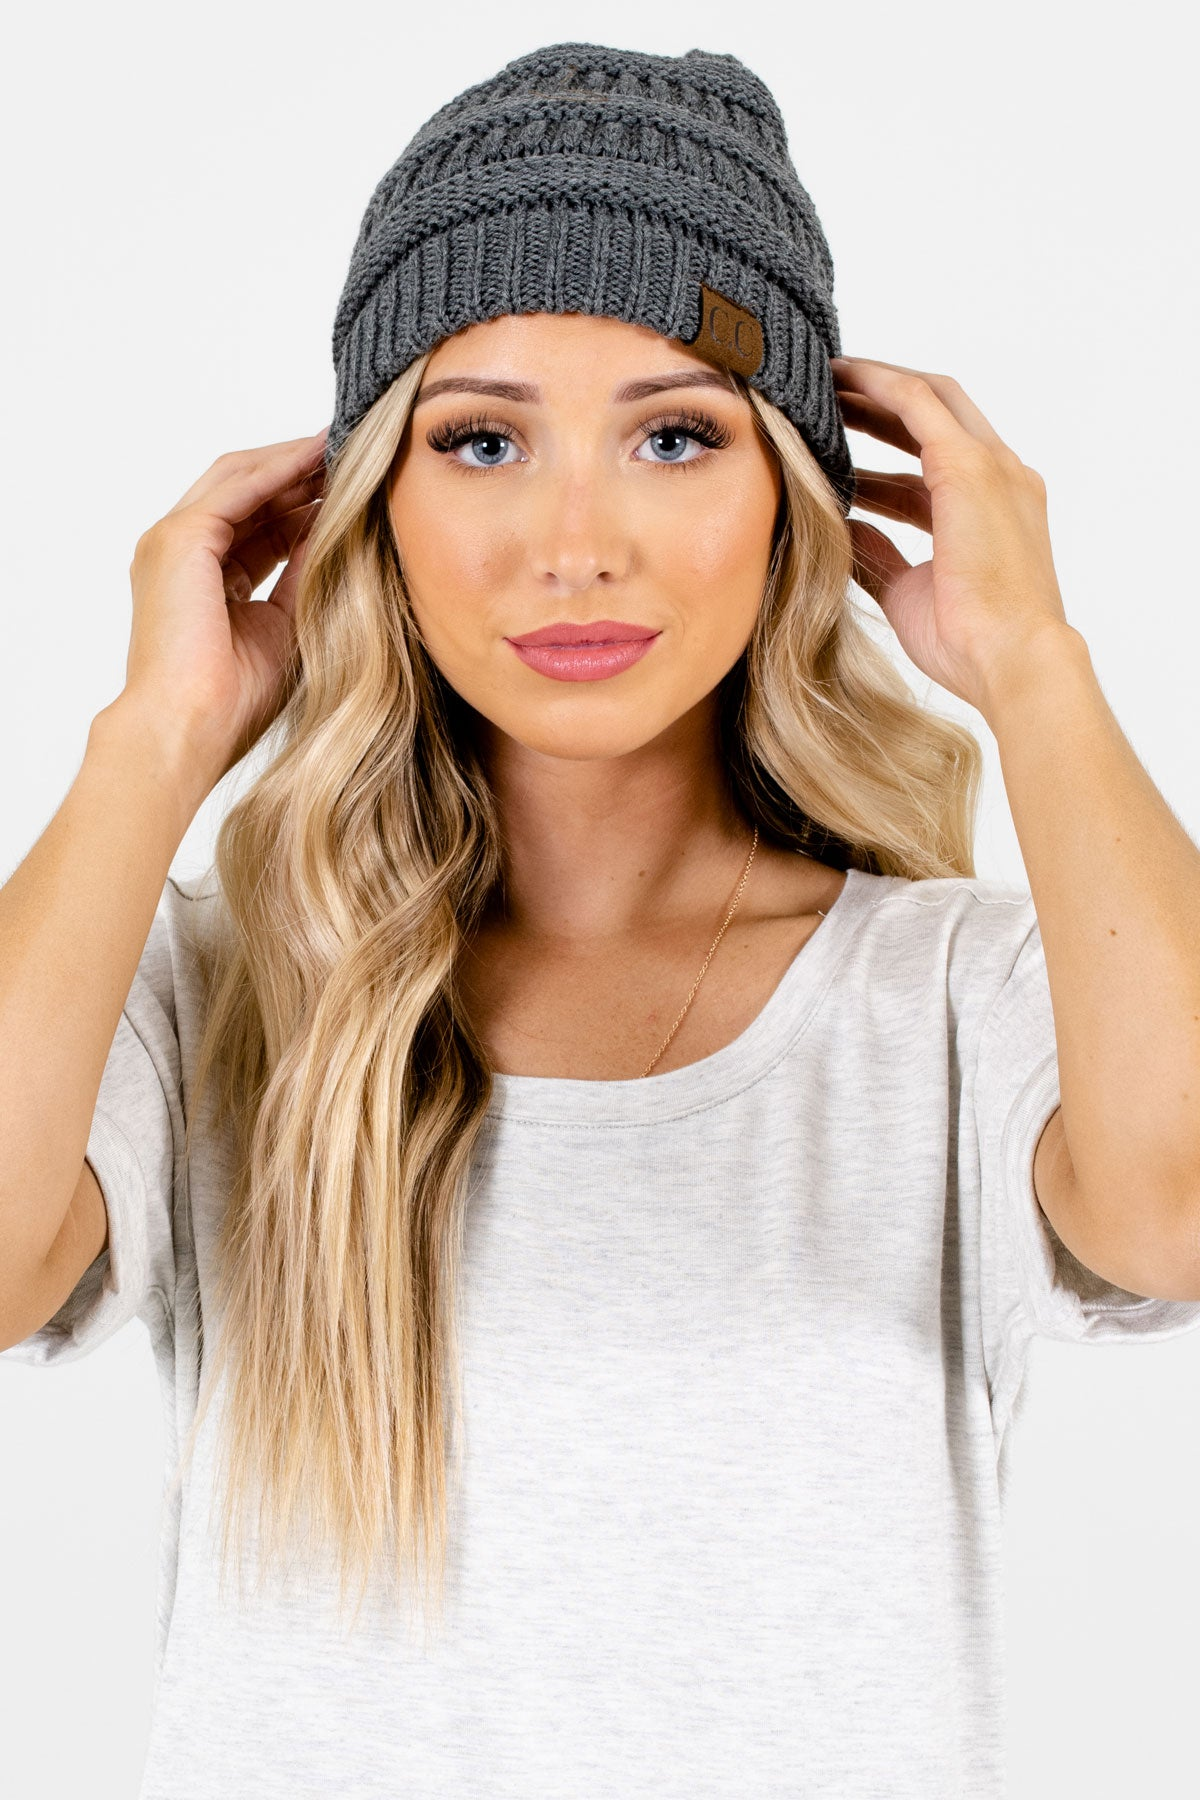 Charcoal Gray High-Quality Knit Boutique Beanies for Women